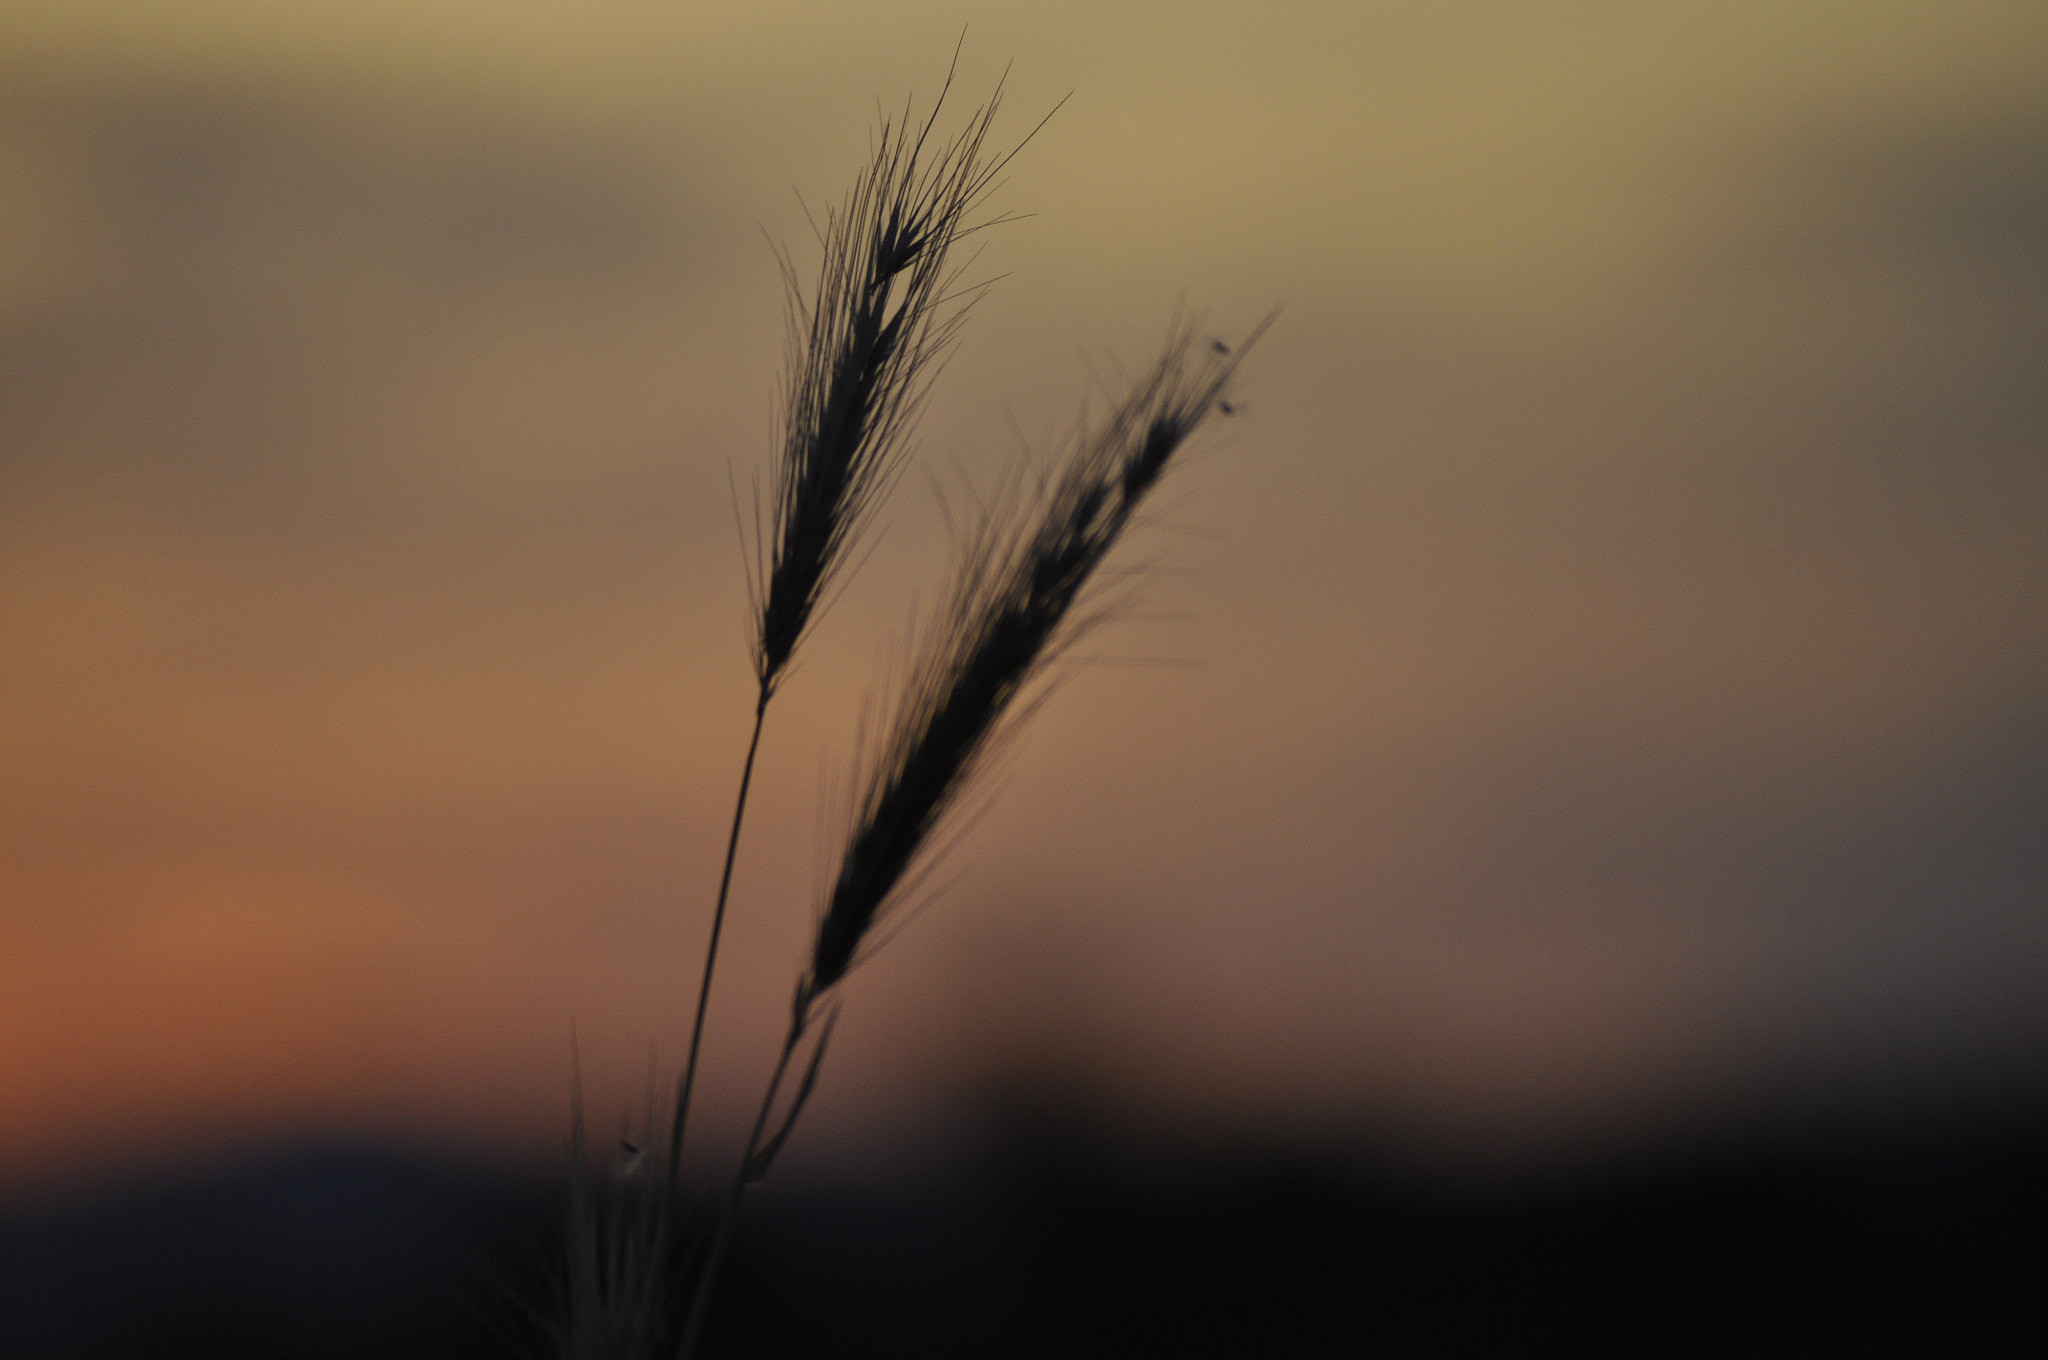 Photograph Grasses in the Evening by Nico Linde on 500px